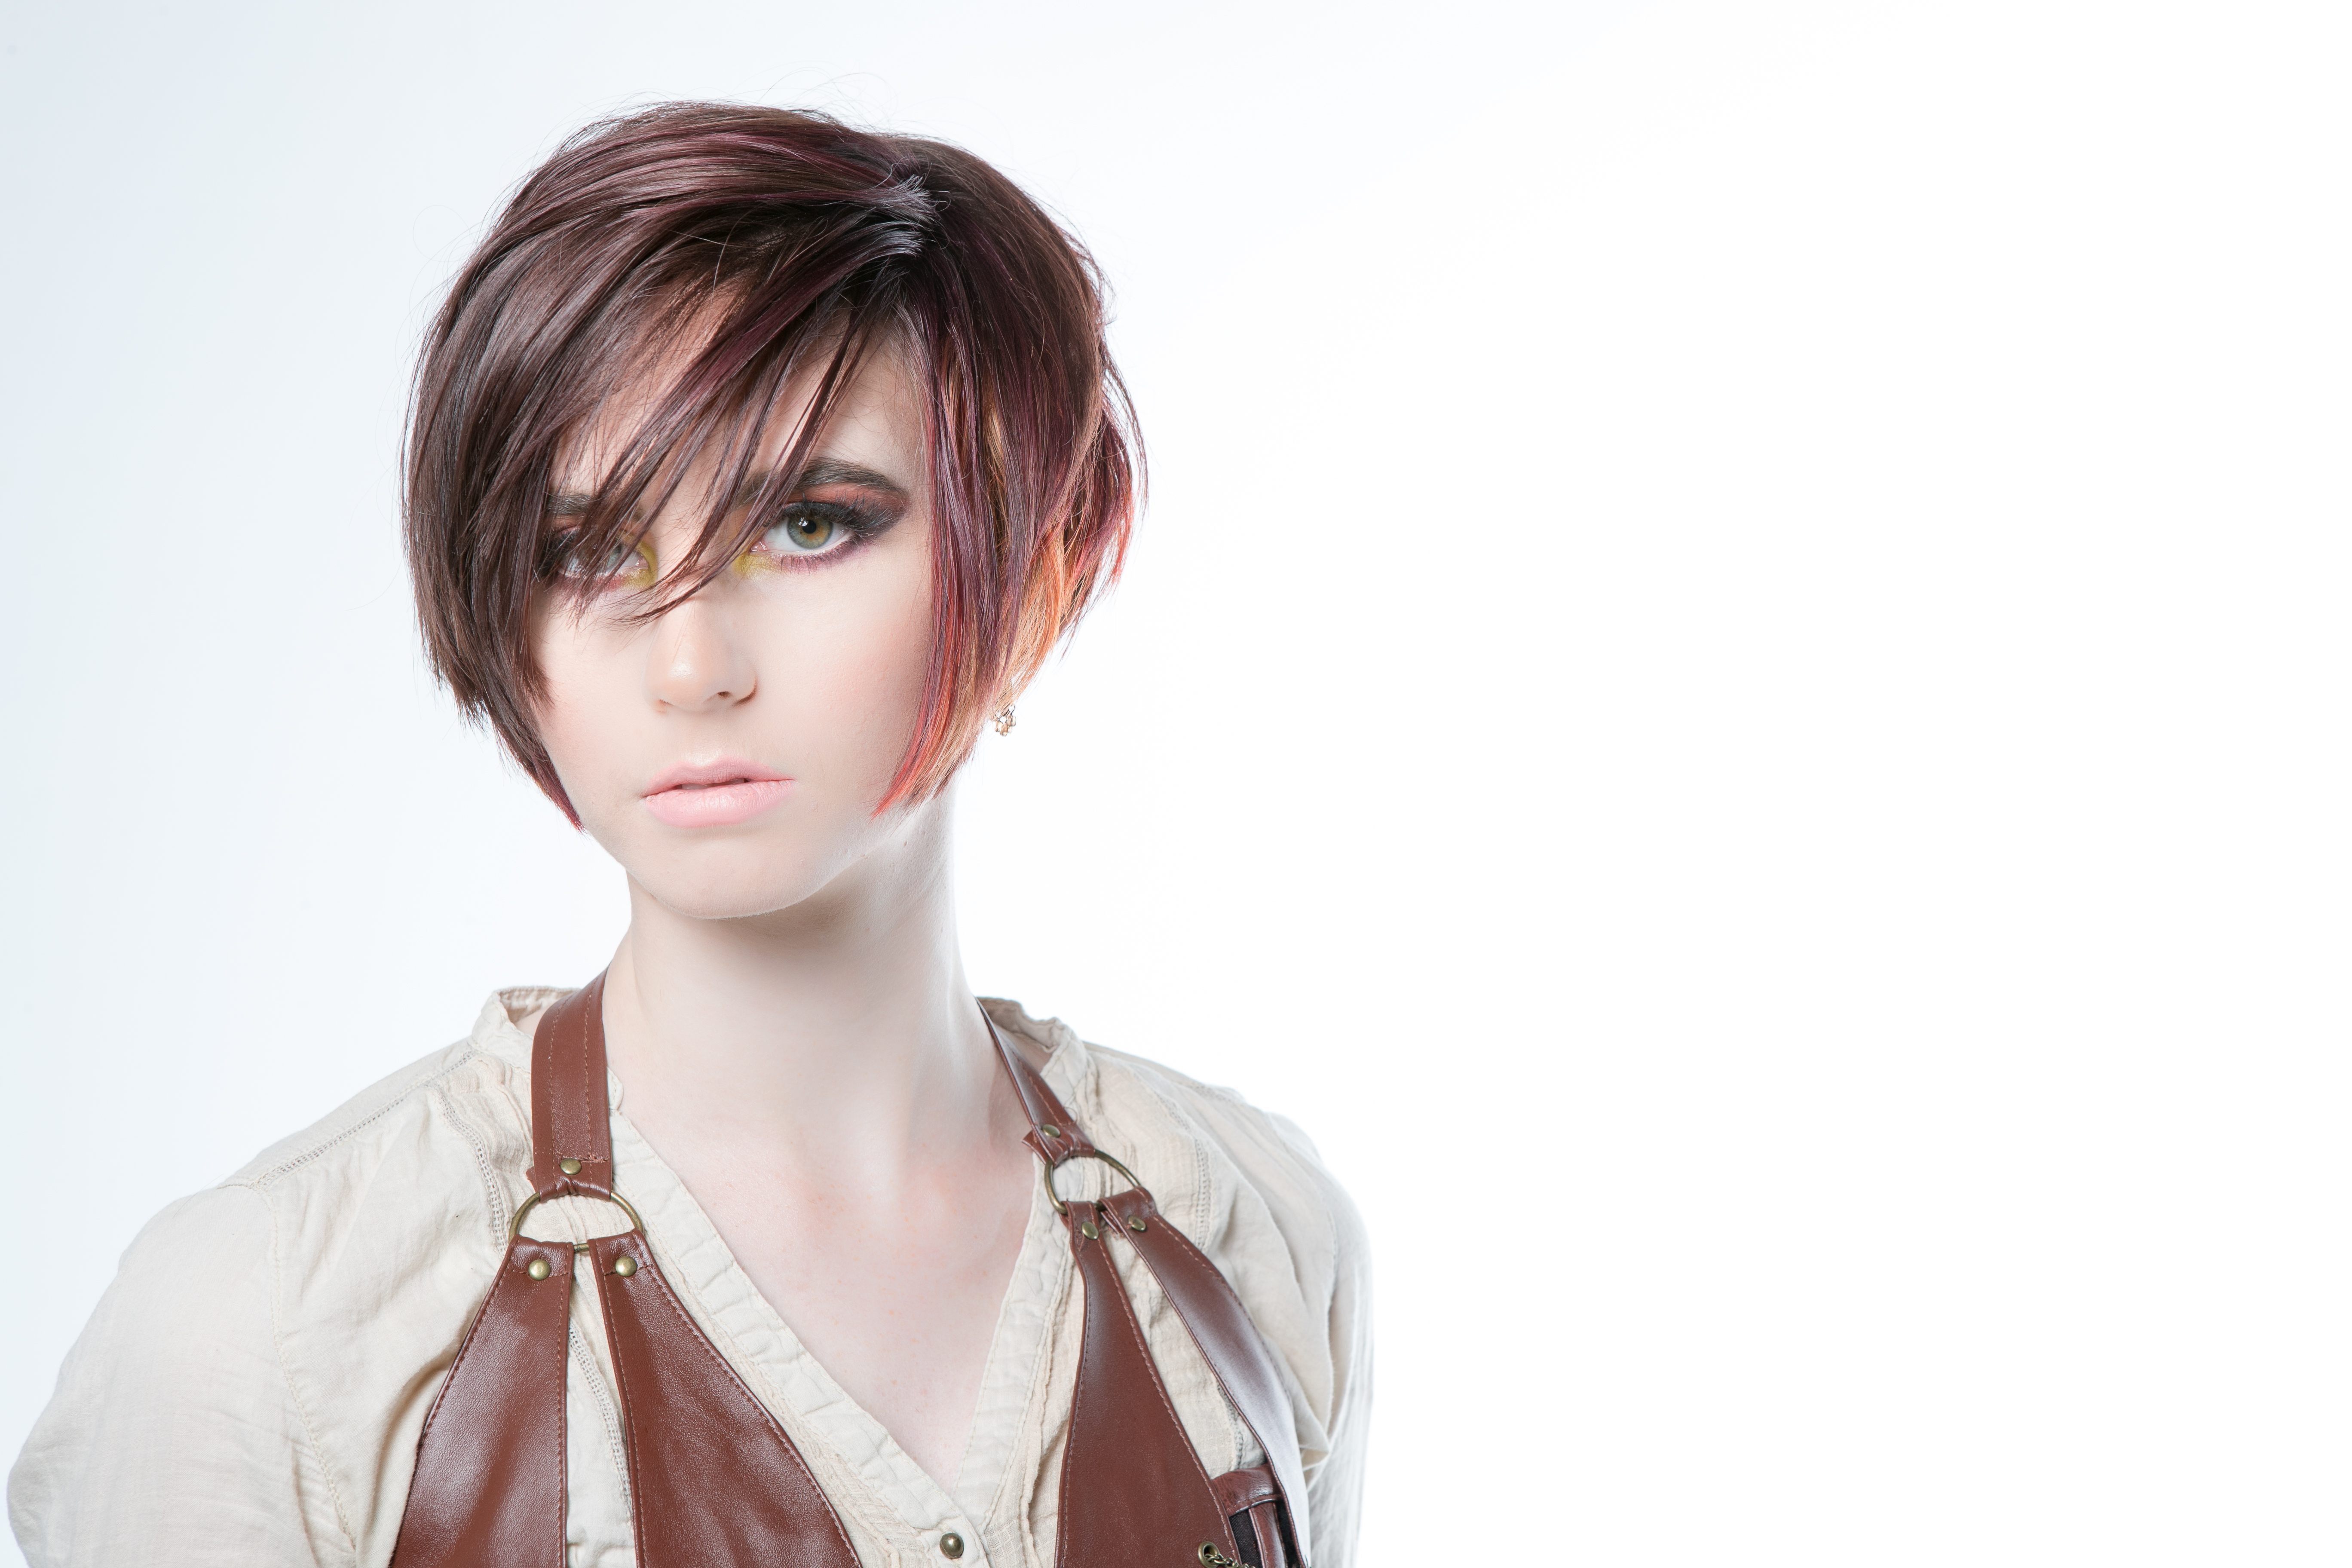 Model with a pixie cut that has orange highlights at the ends